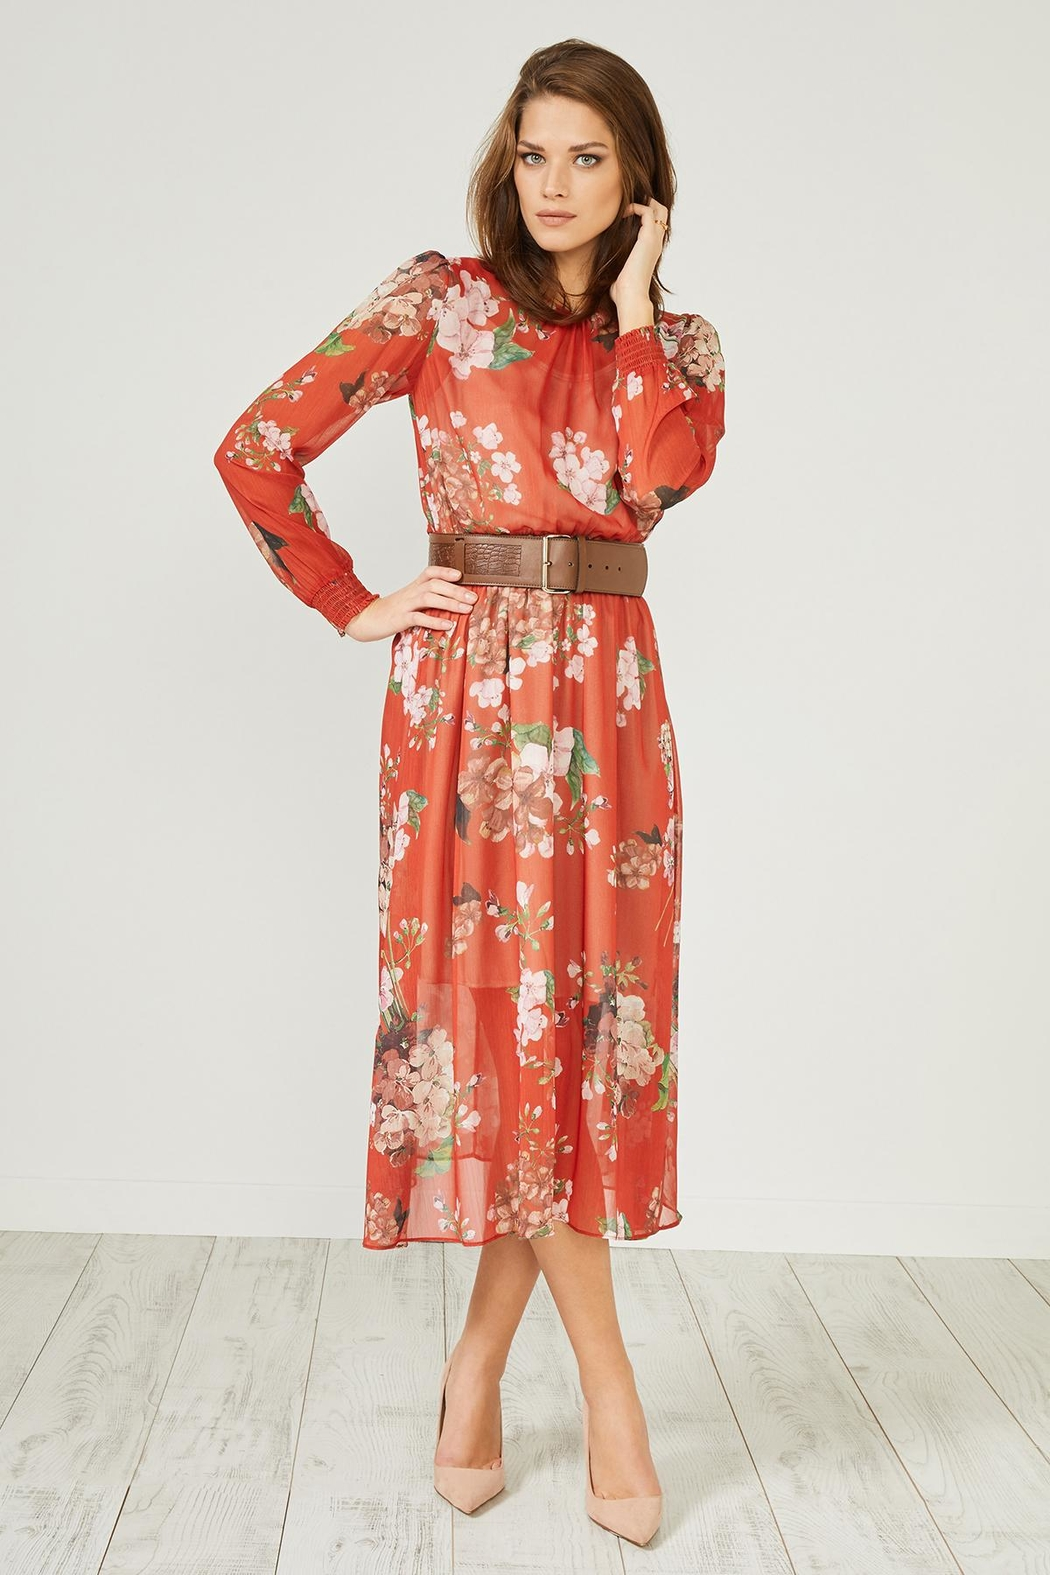 f89343a517b8 Urban Touch Red Floral Dress from United Kingdom — Shoptiques